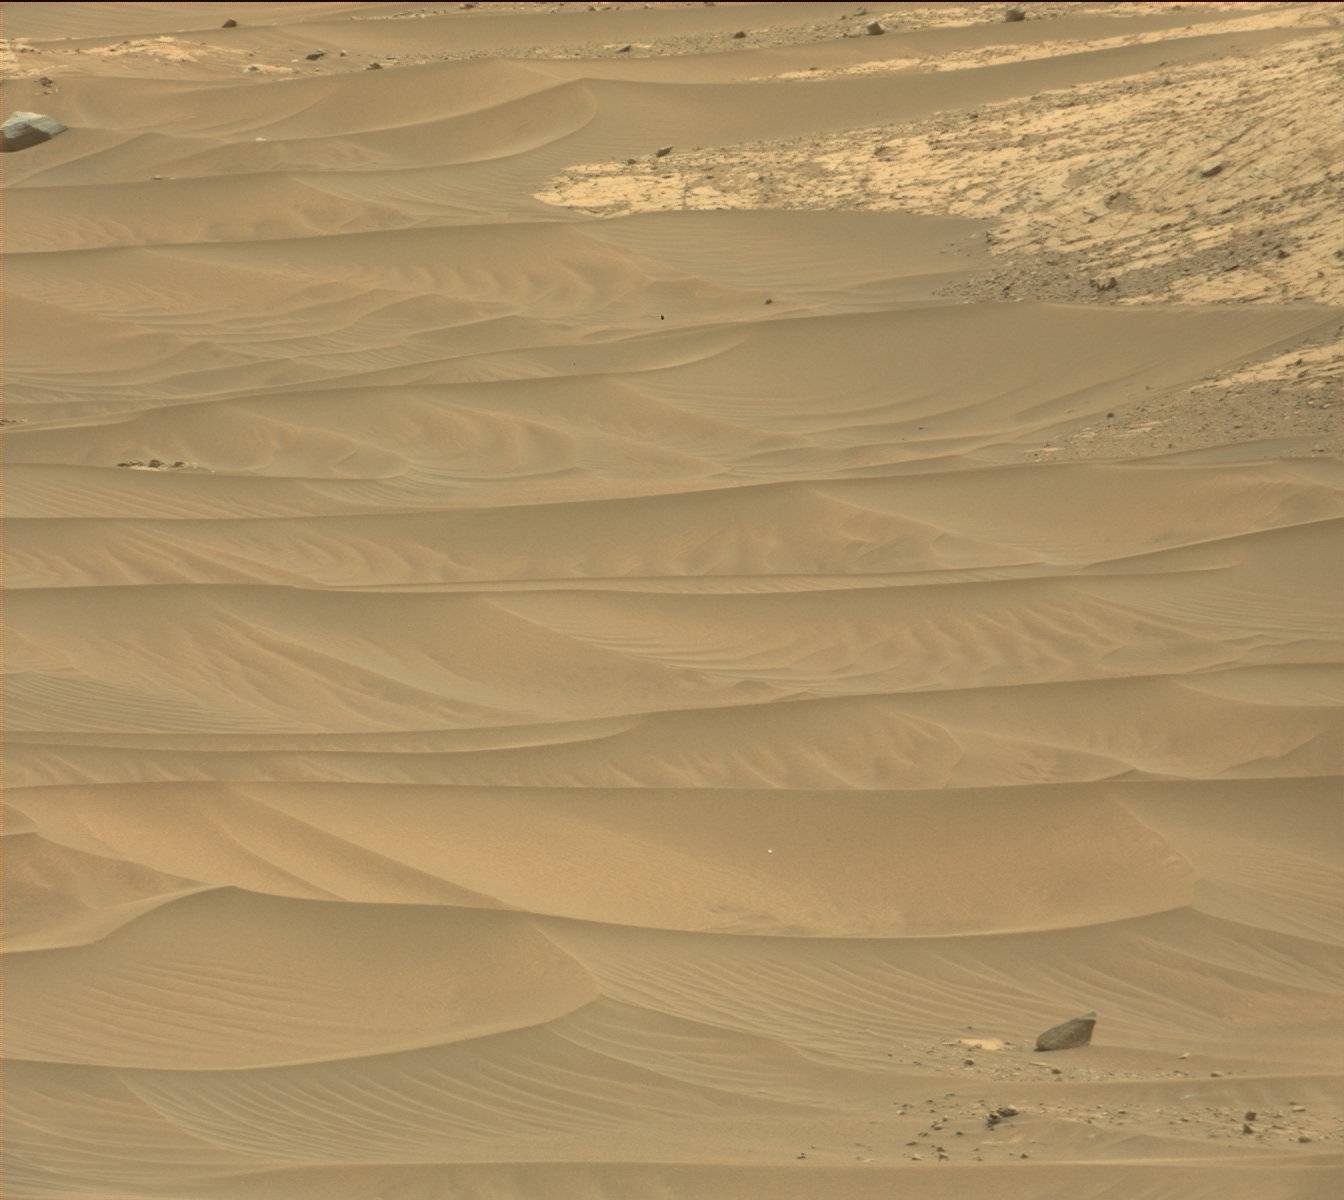 Nasa's Mars rover Curiosity acquired this image using its Mast Camera (Mastcam) on Sol 986